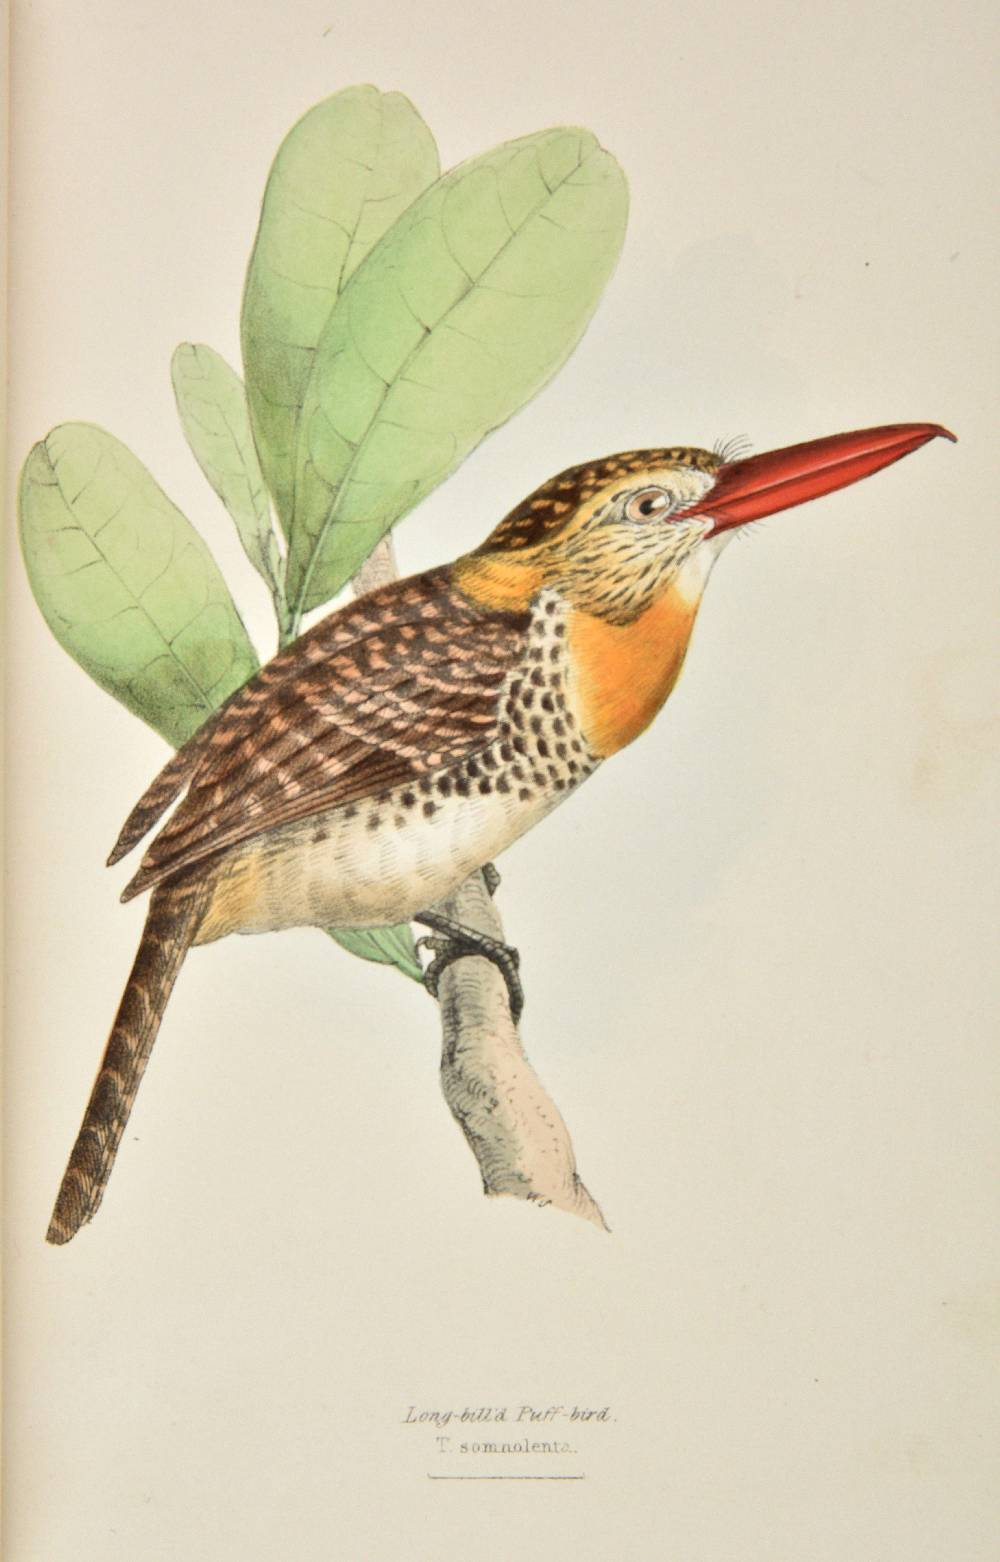 Lot 40 - Swainson (William). A Selection of the Birds of Brazil and Mexico, London: Henry G. Bohn, 1841, 78